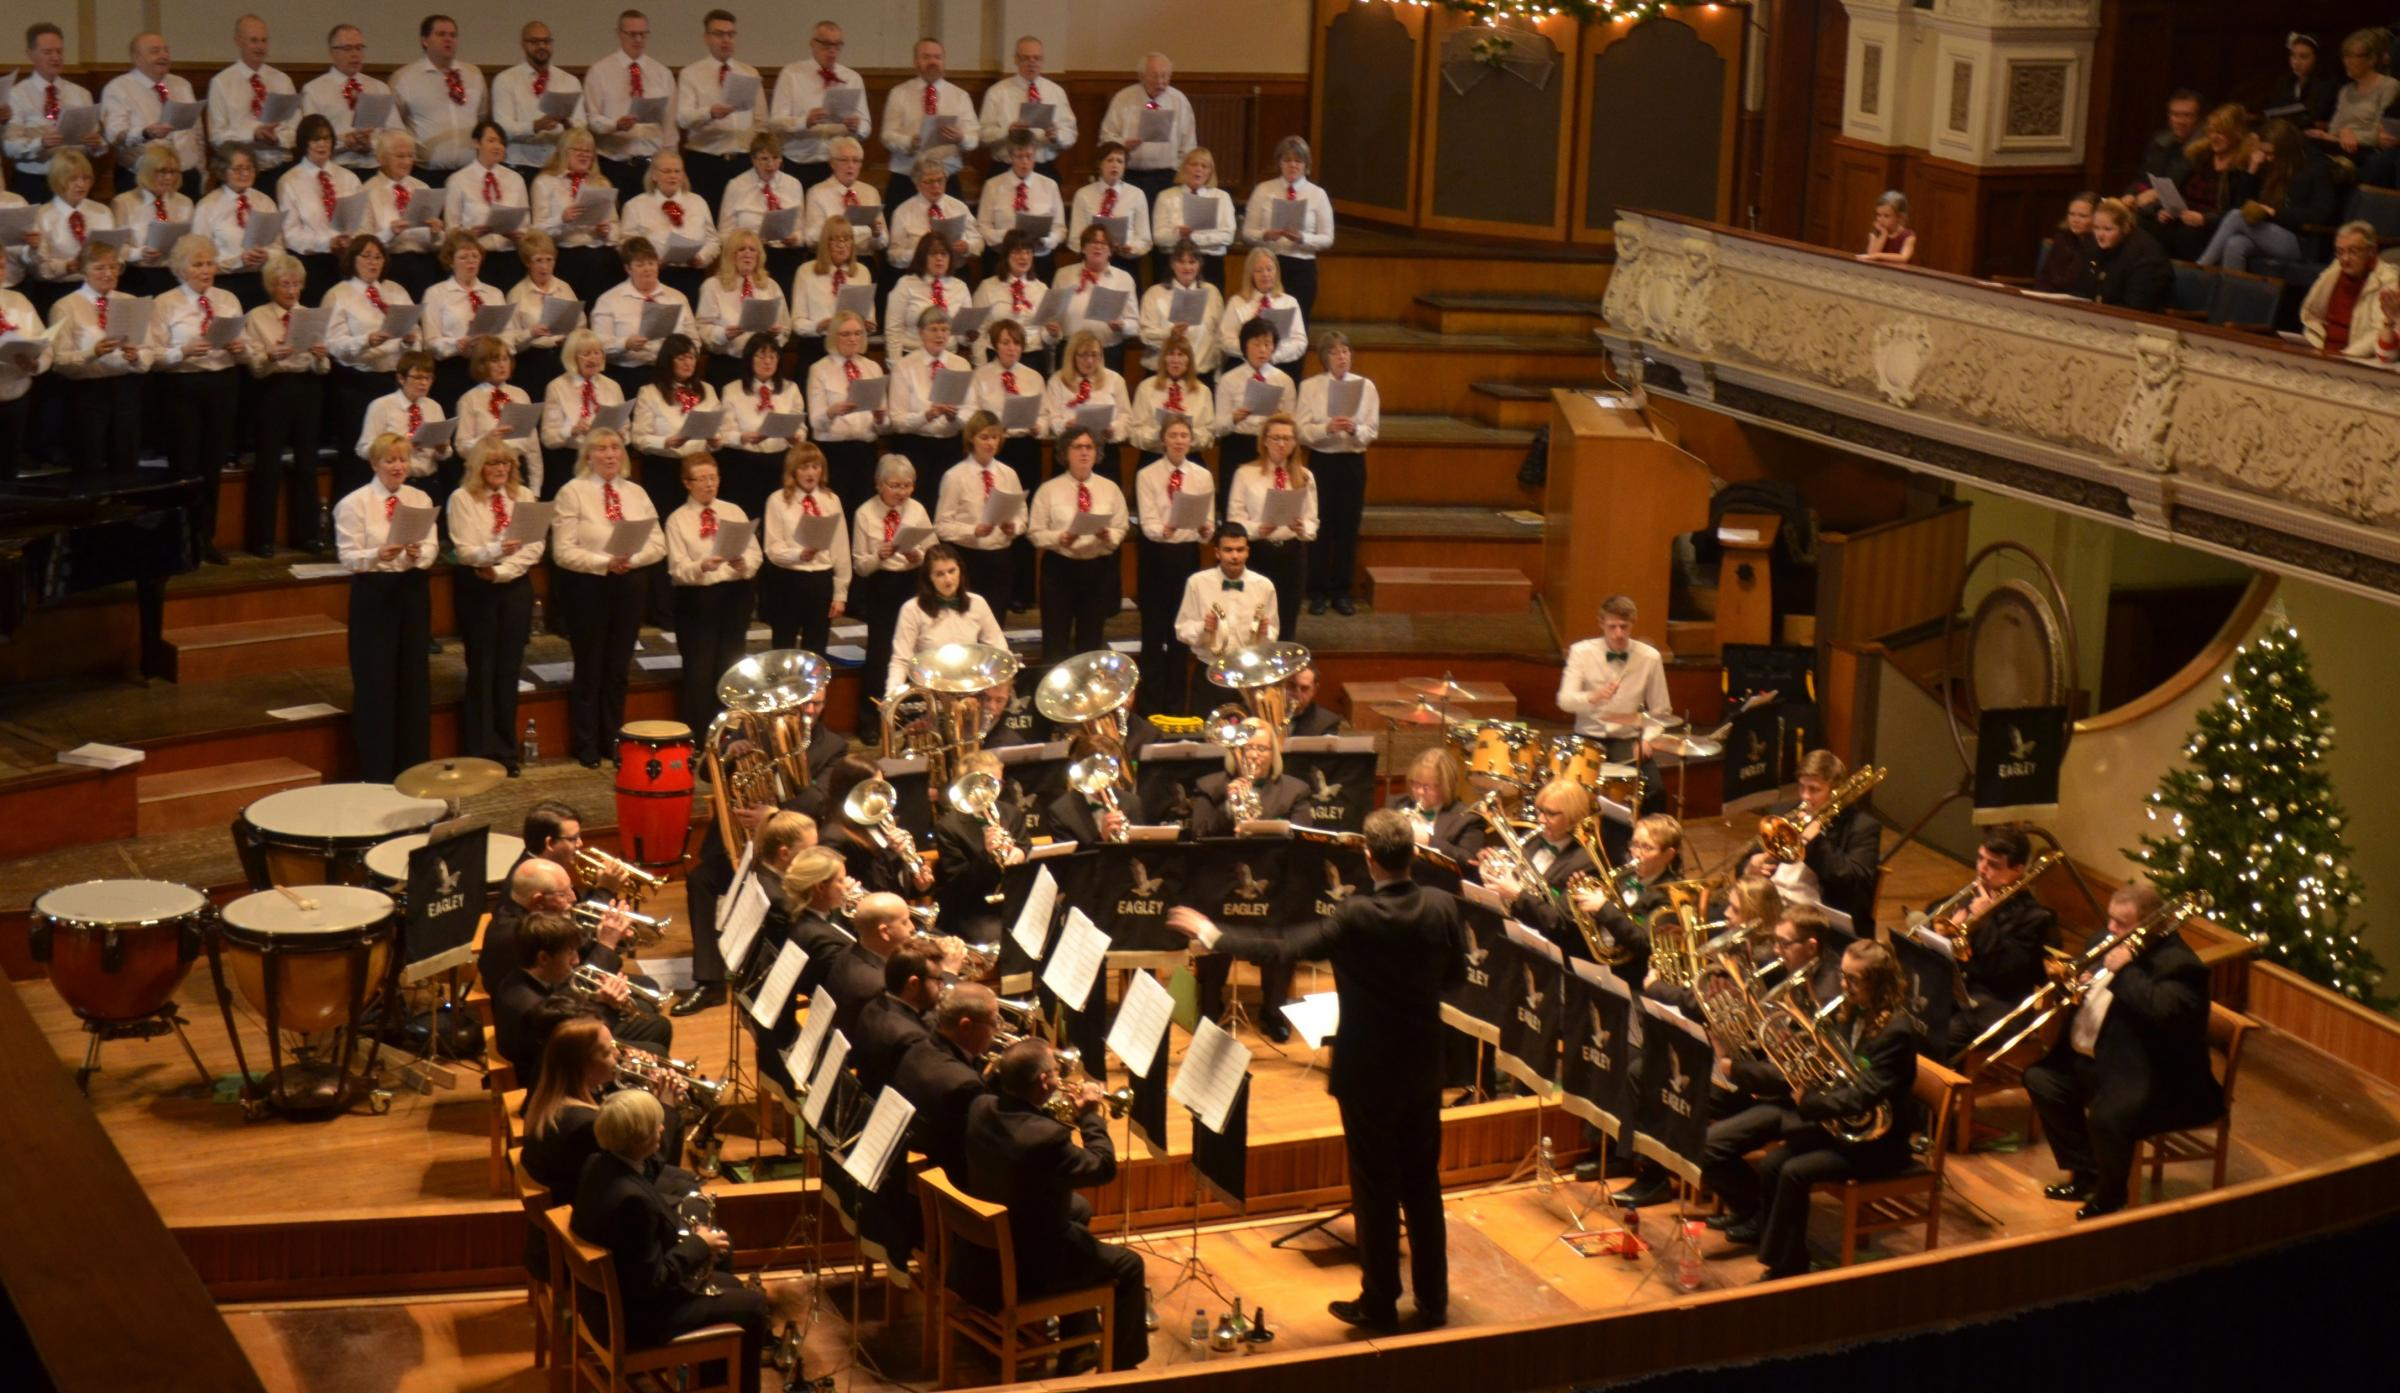 CONCERT: Eagley and Smithills Christmas Concert